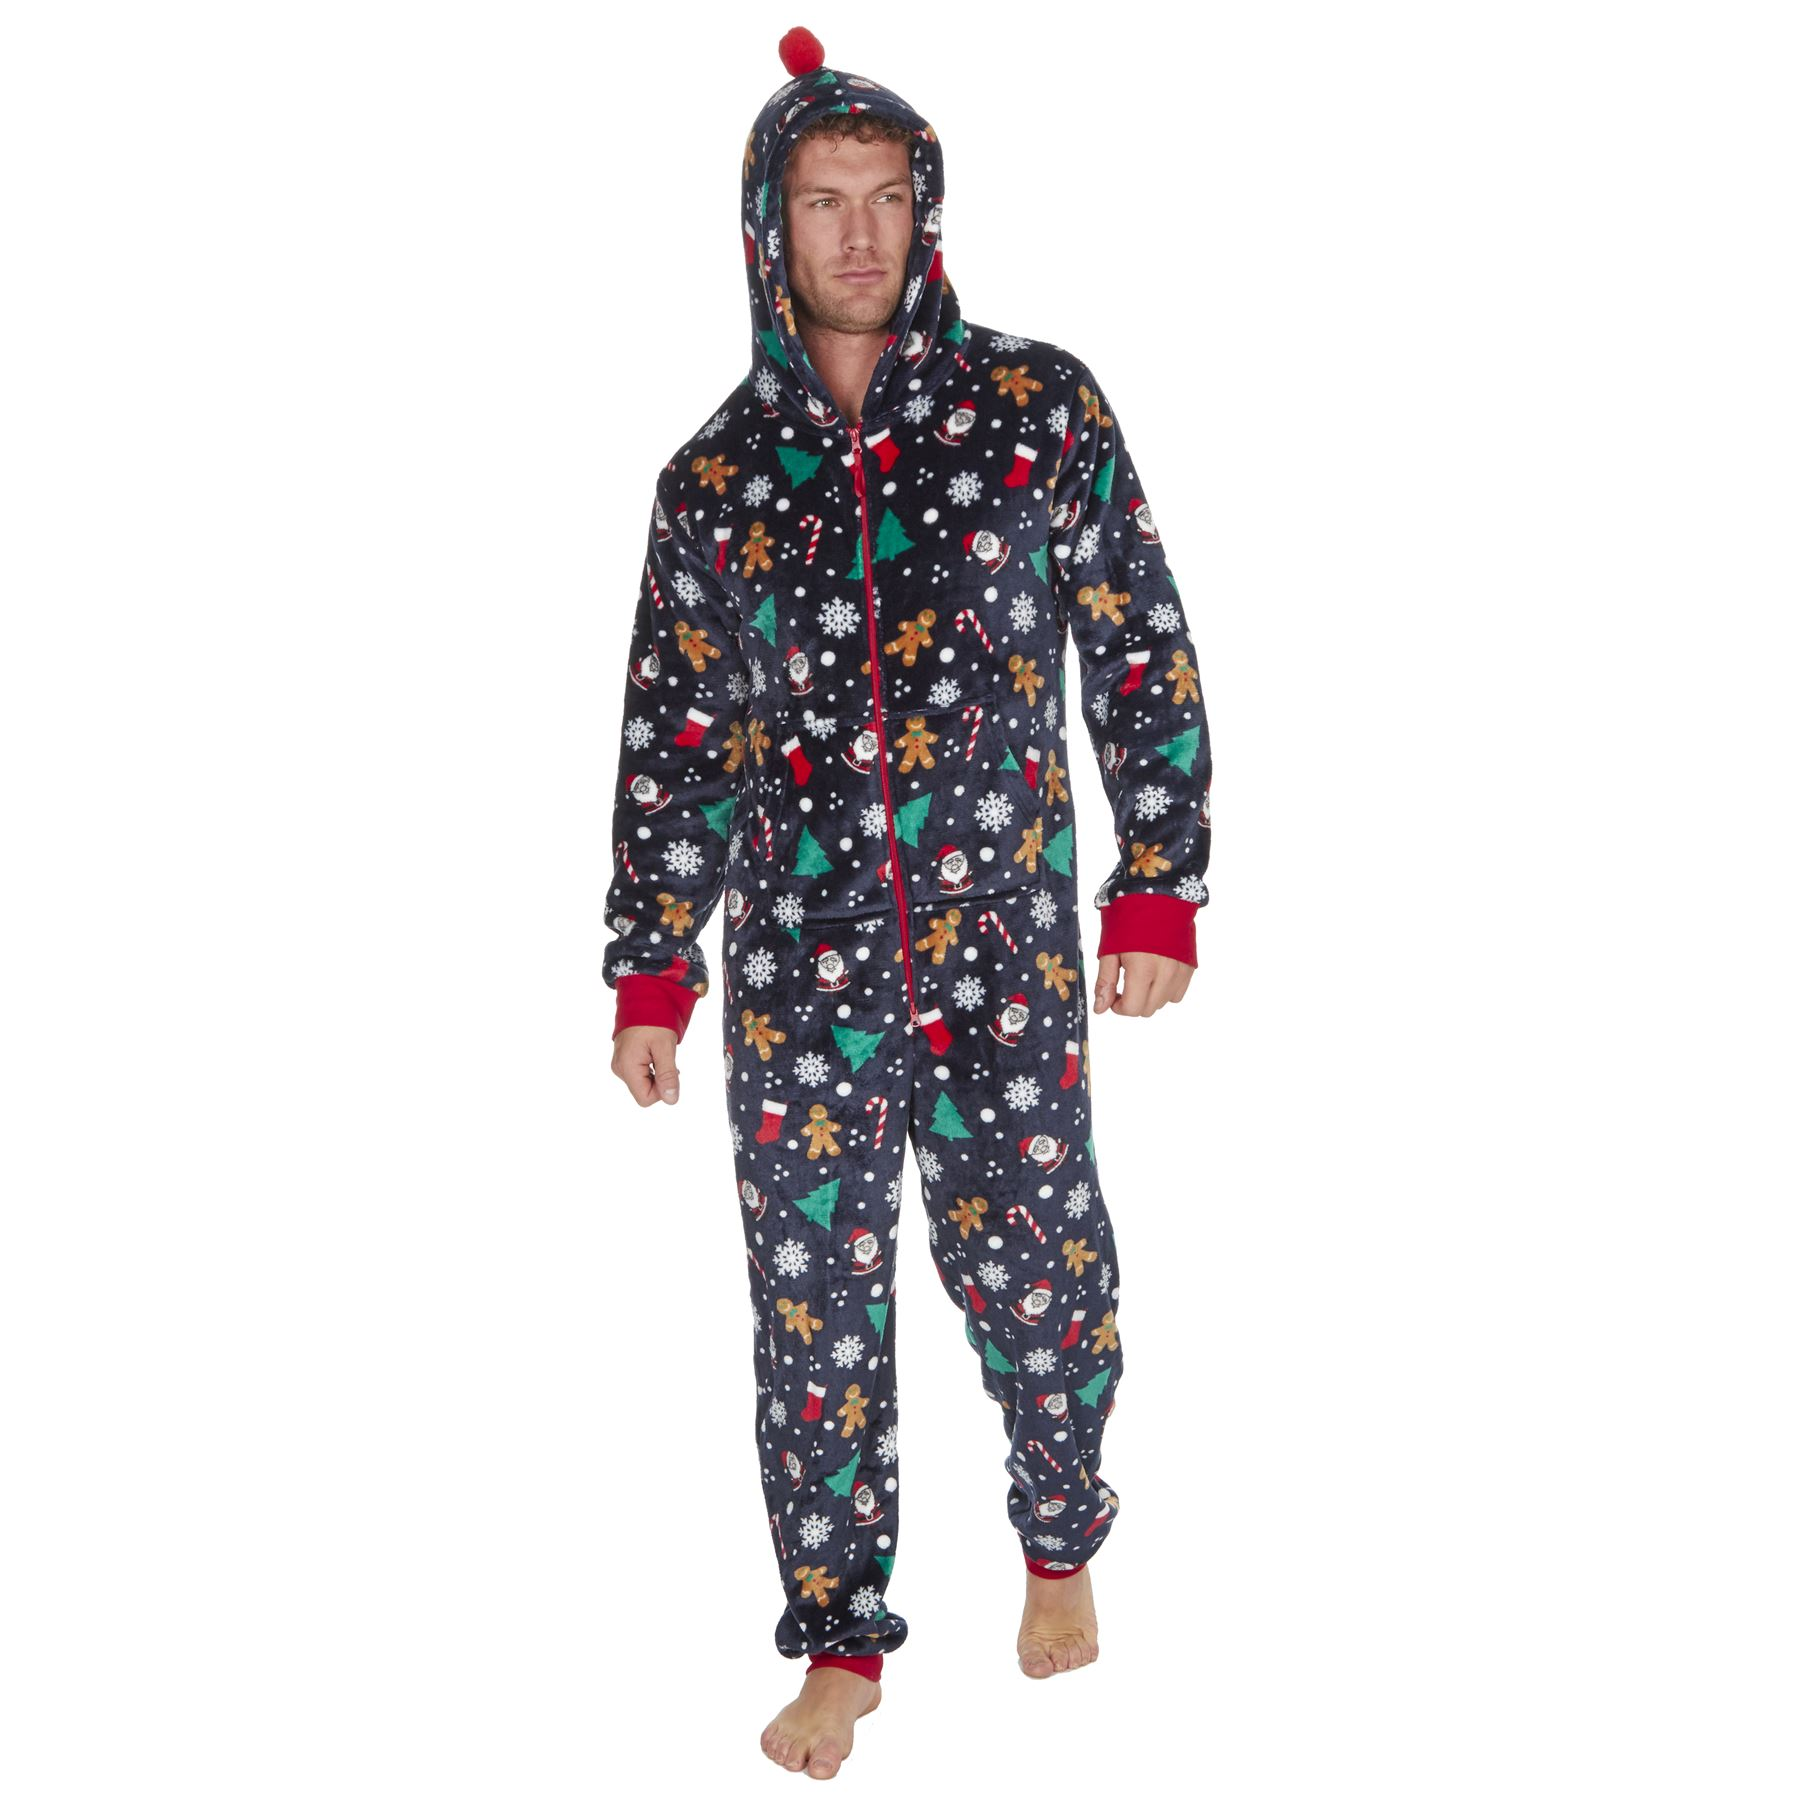 Ladies-Womens-Girls-Fleece-All-In-One-Pyjamas-Outfit-Jumpsuit-Costume-Size-6-18 thumbnail 62